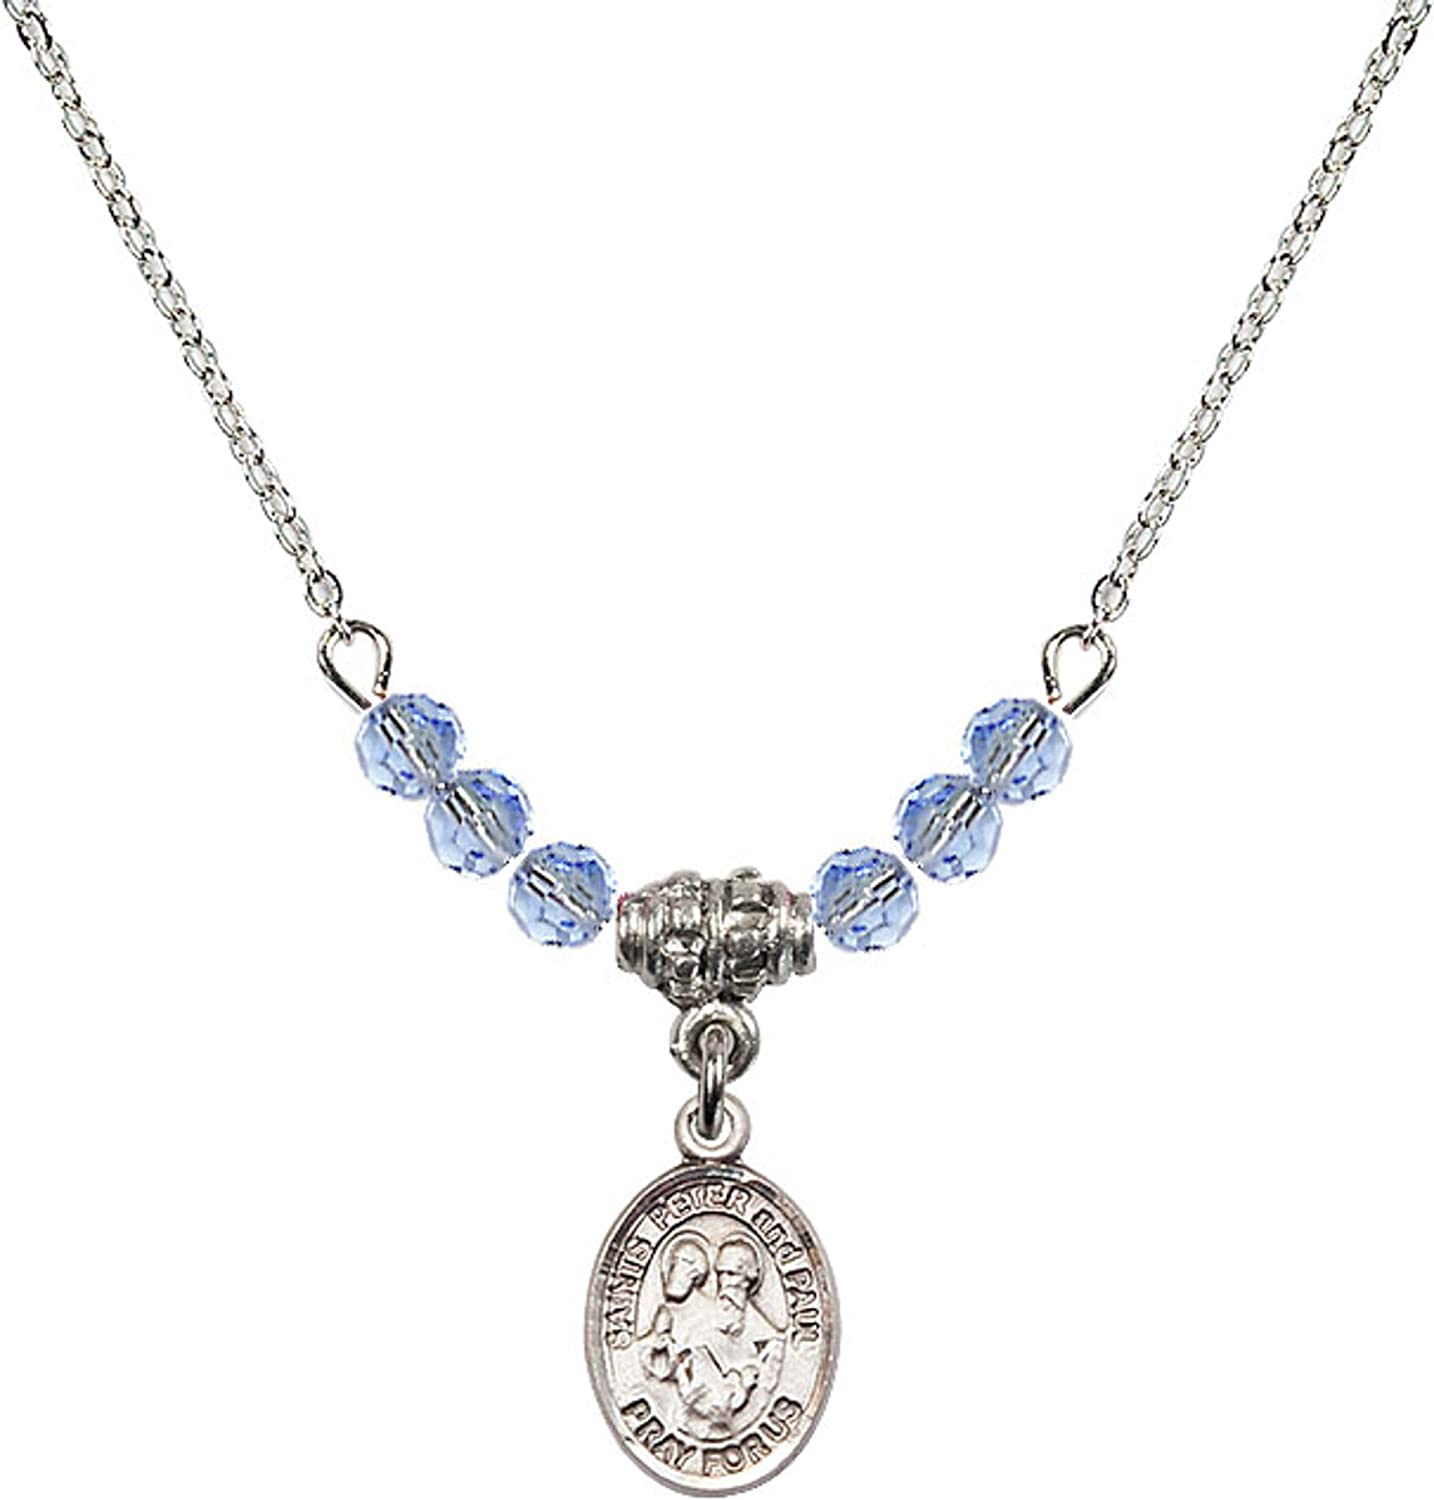 Bonyak Jewelry 18 Inch Rhodium Plated Necklace w// 4mm Light Blue September Birth Month Stone Beads and Saints Peter /& Paul Charm